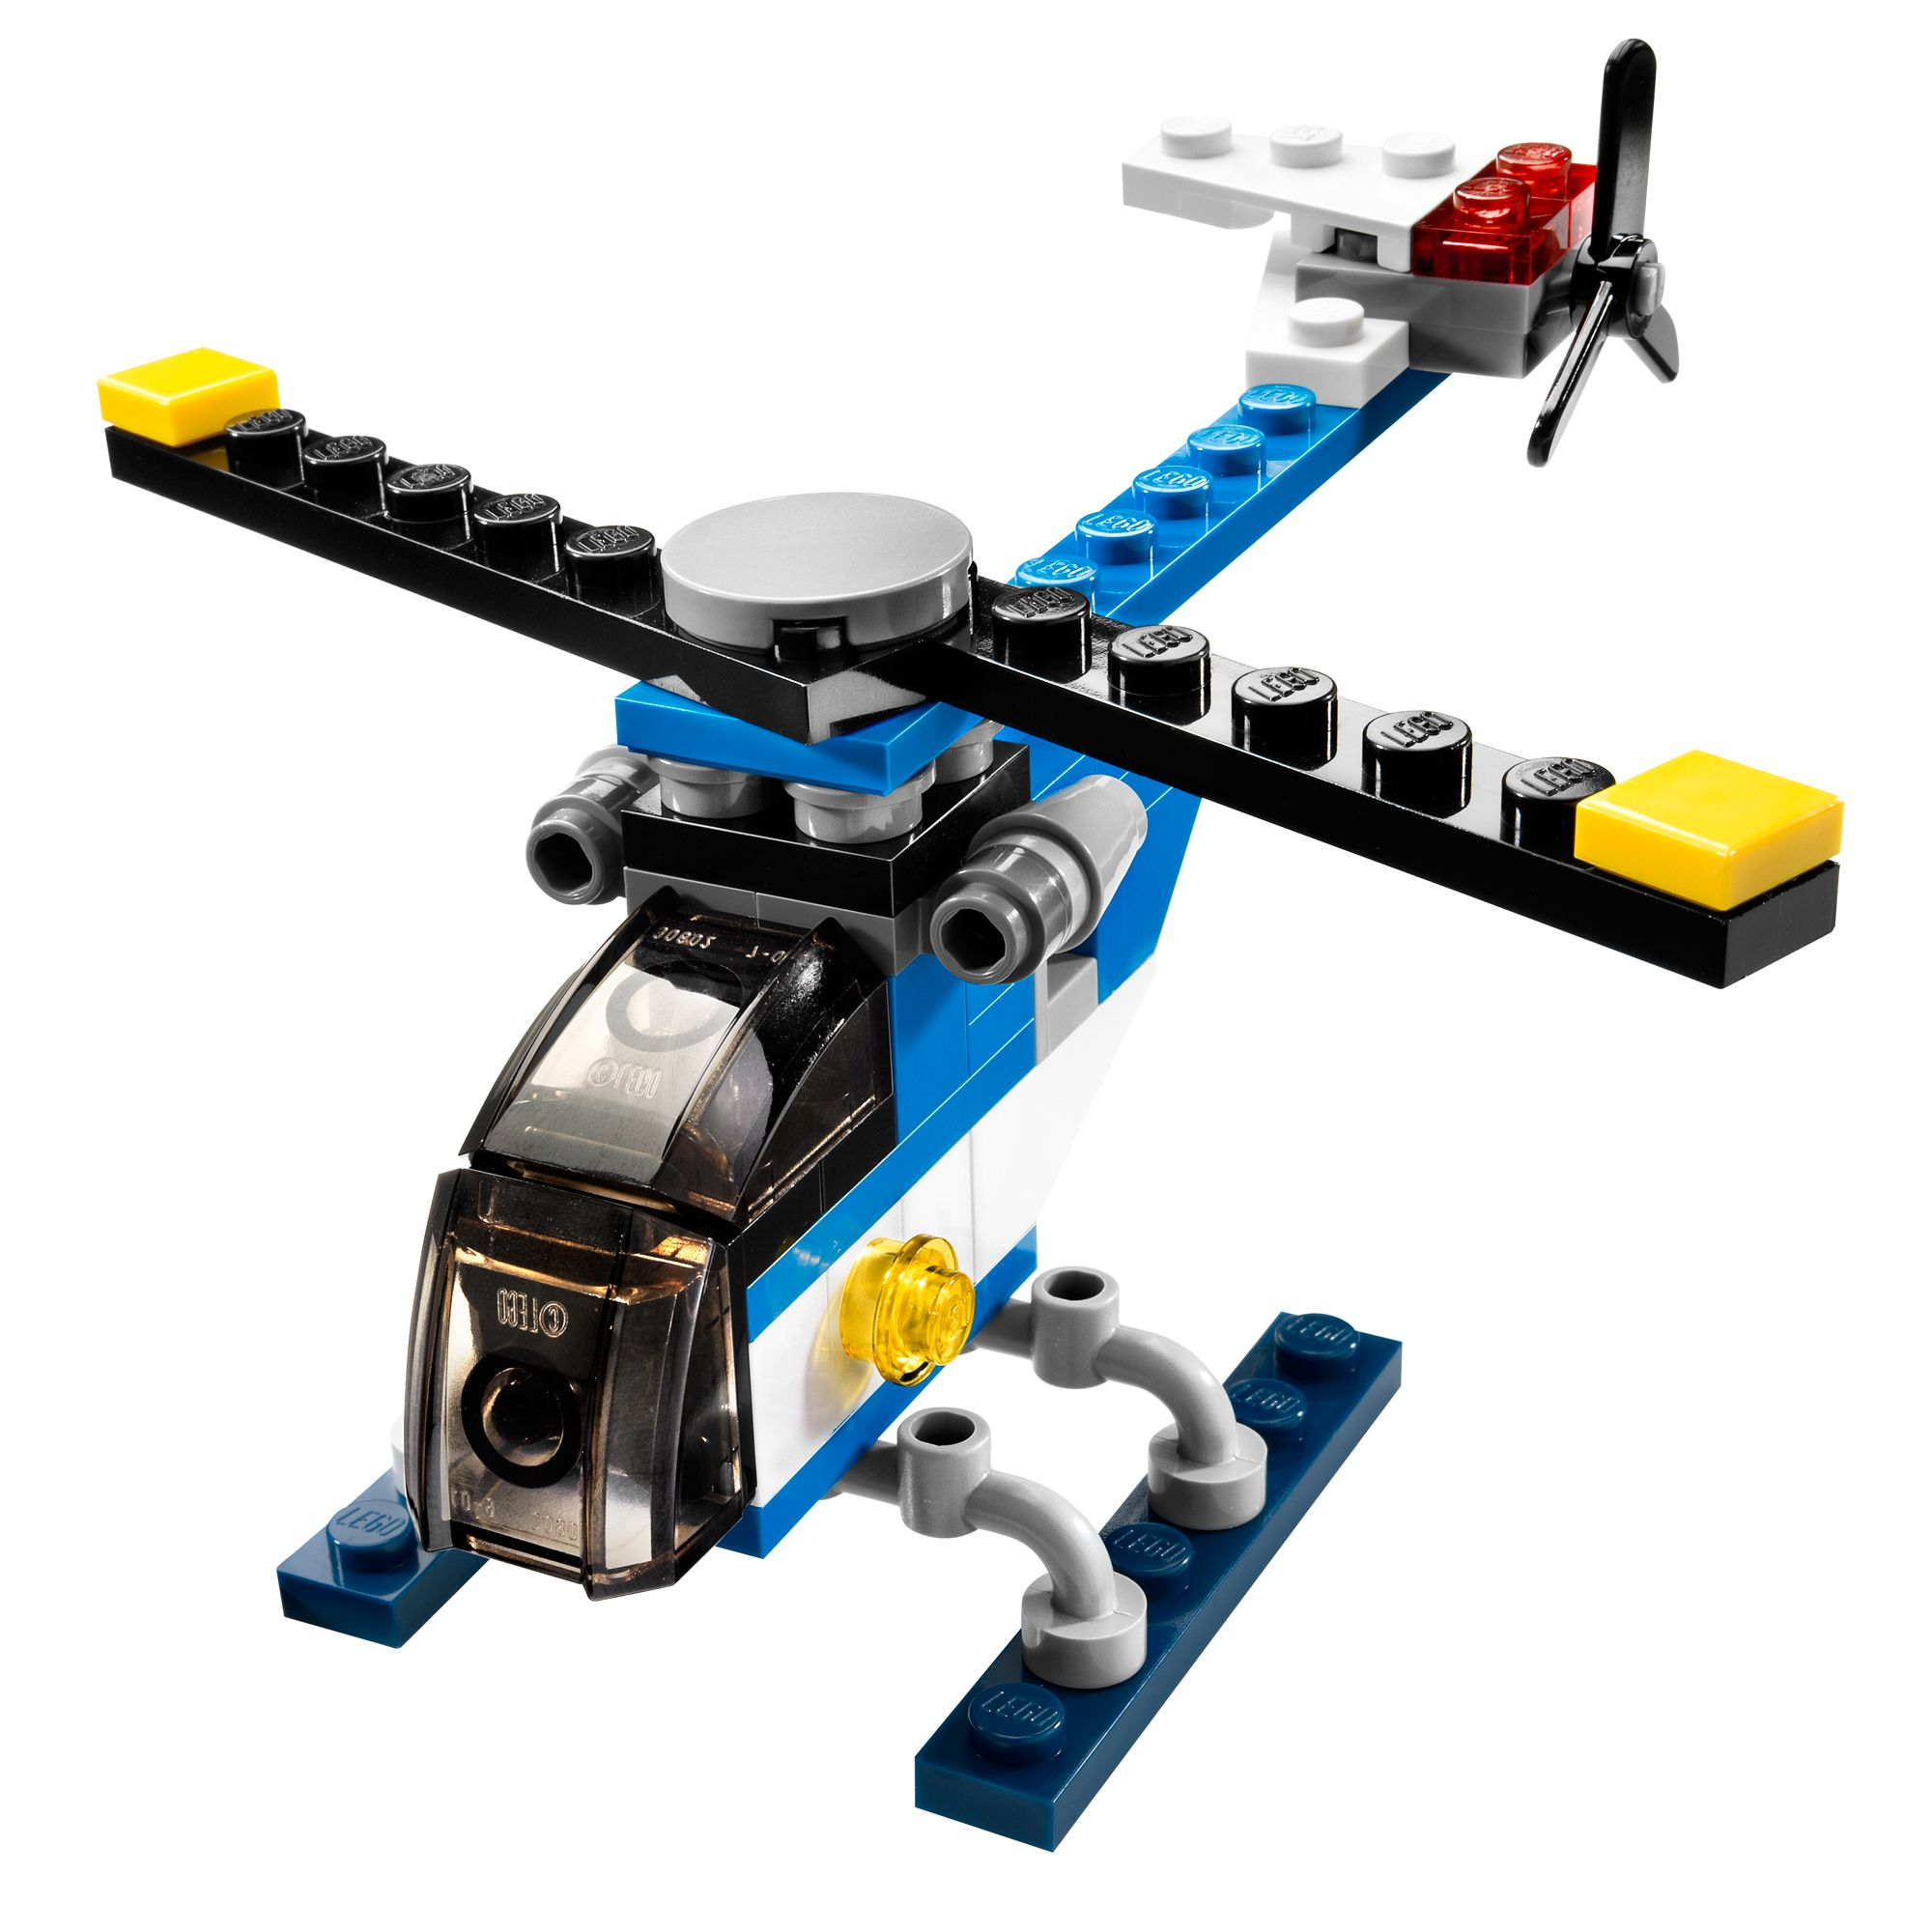 Lego Creator 3 In 1 Mini Helicopter Building Kit